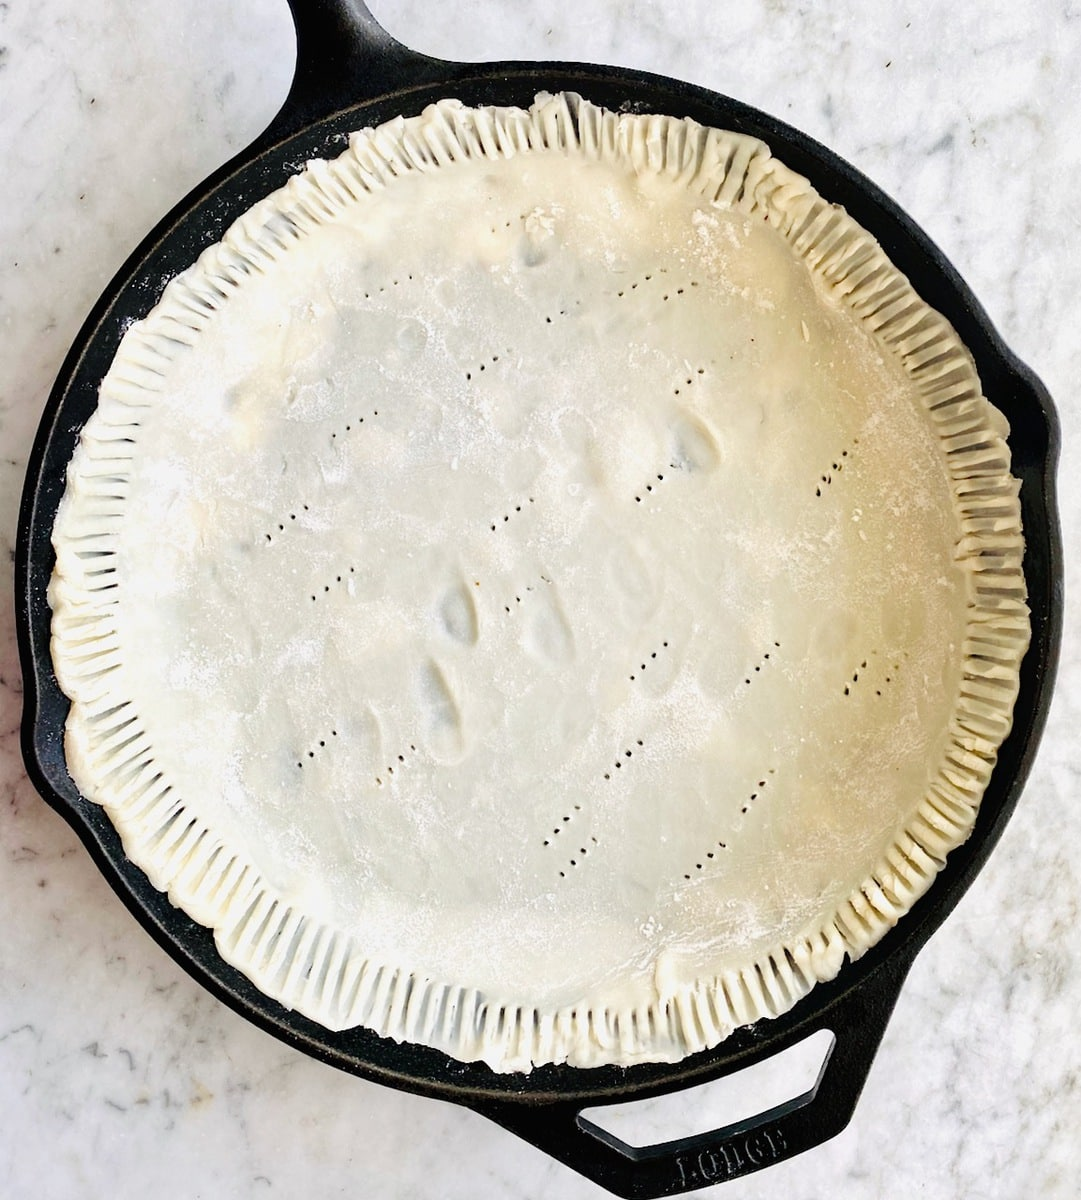 refrigerated pie dough pressed into a 12 inch cast iron skillet.